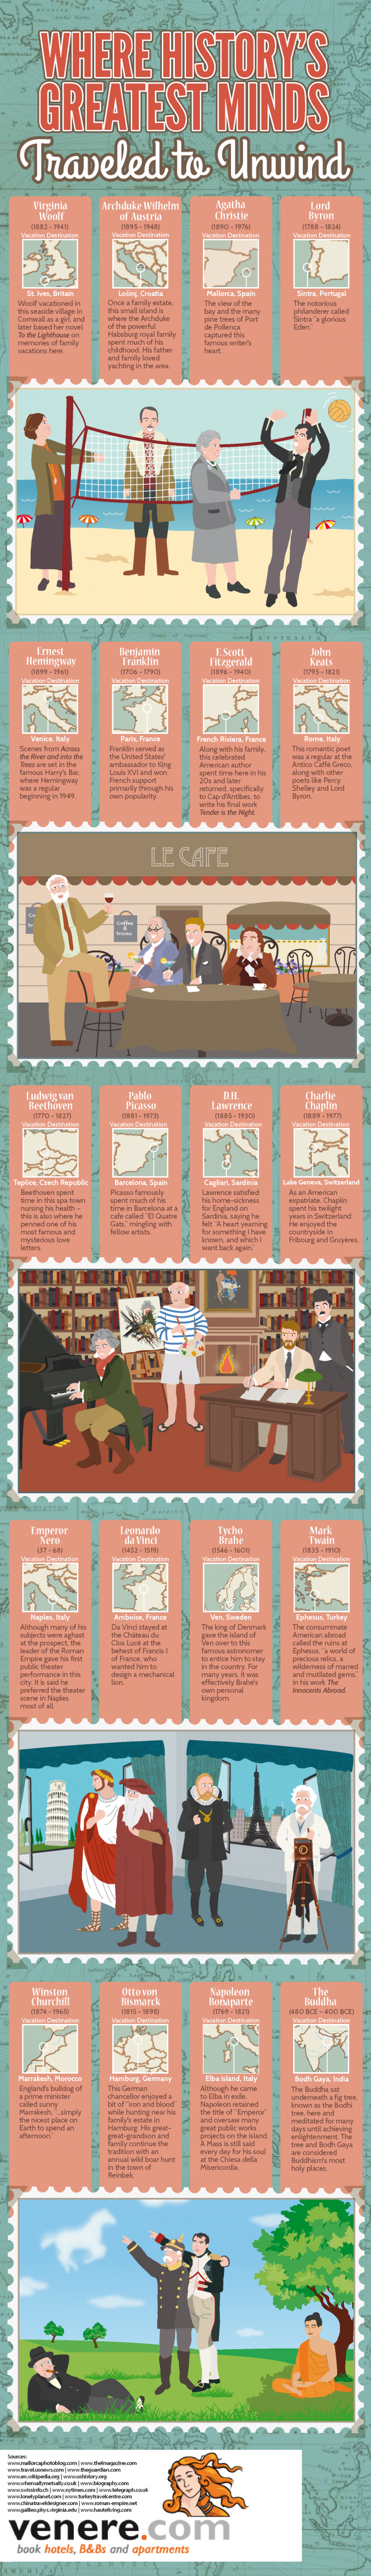 Where History's Greatest Minds Traveled To Unwind Infographic